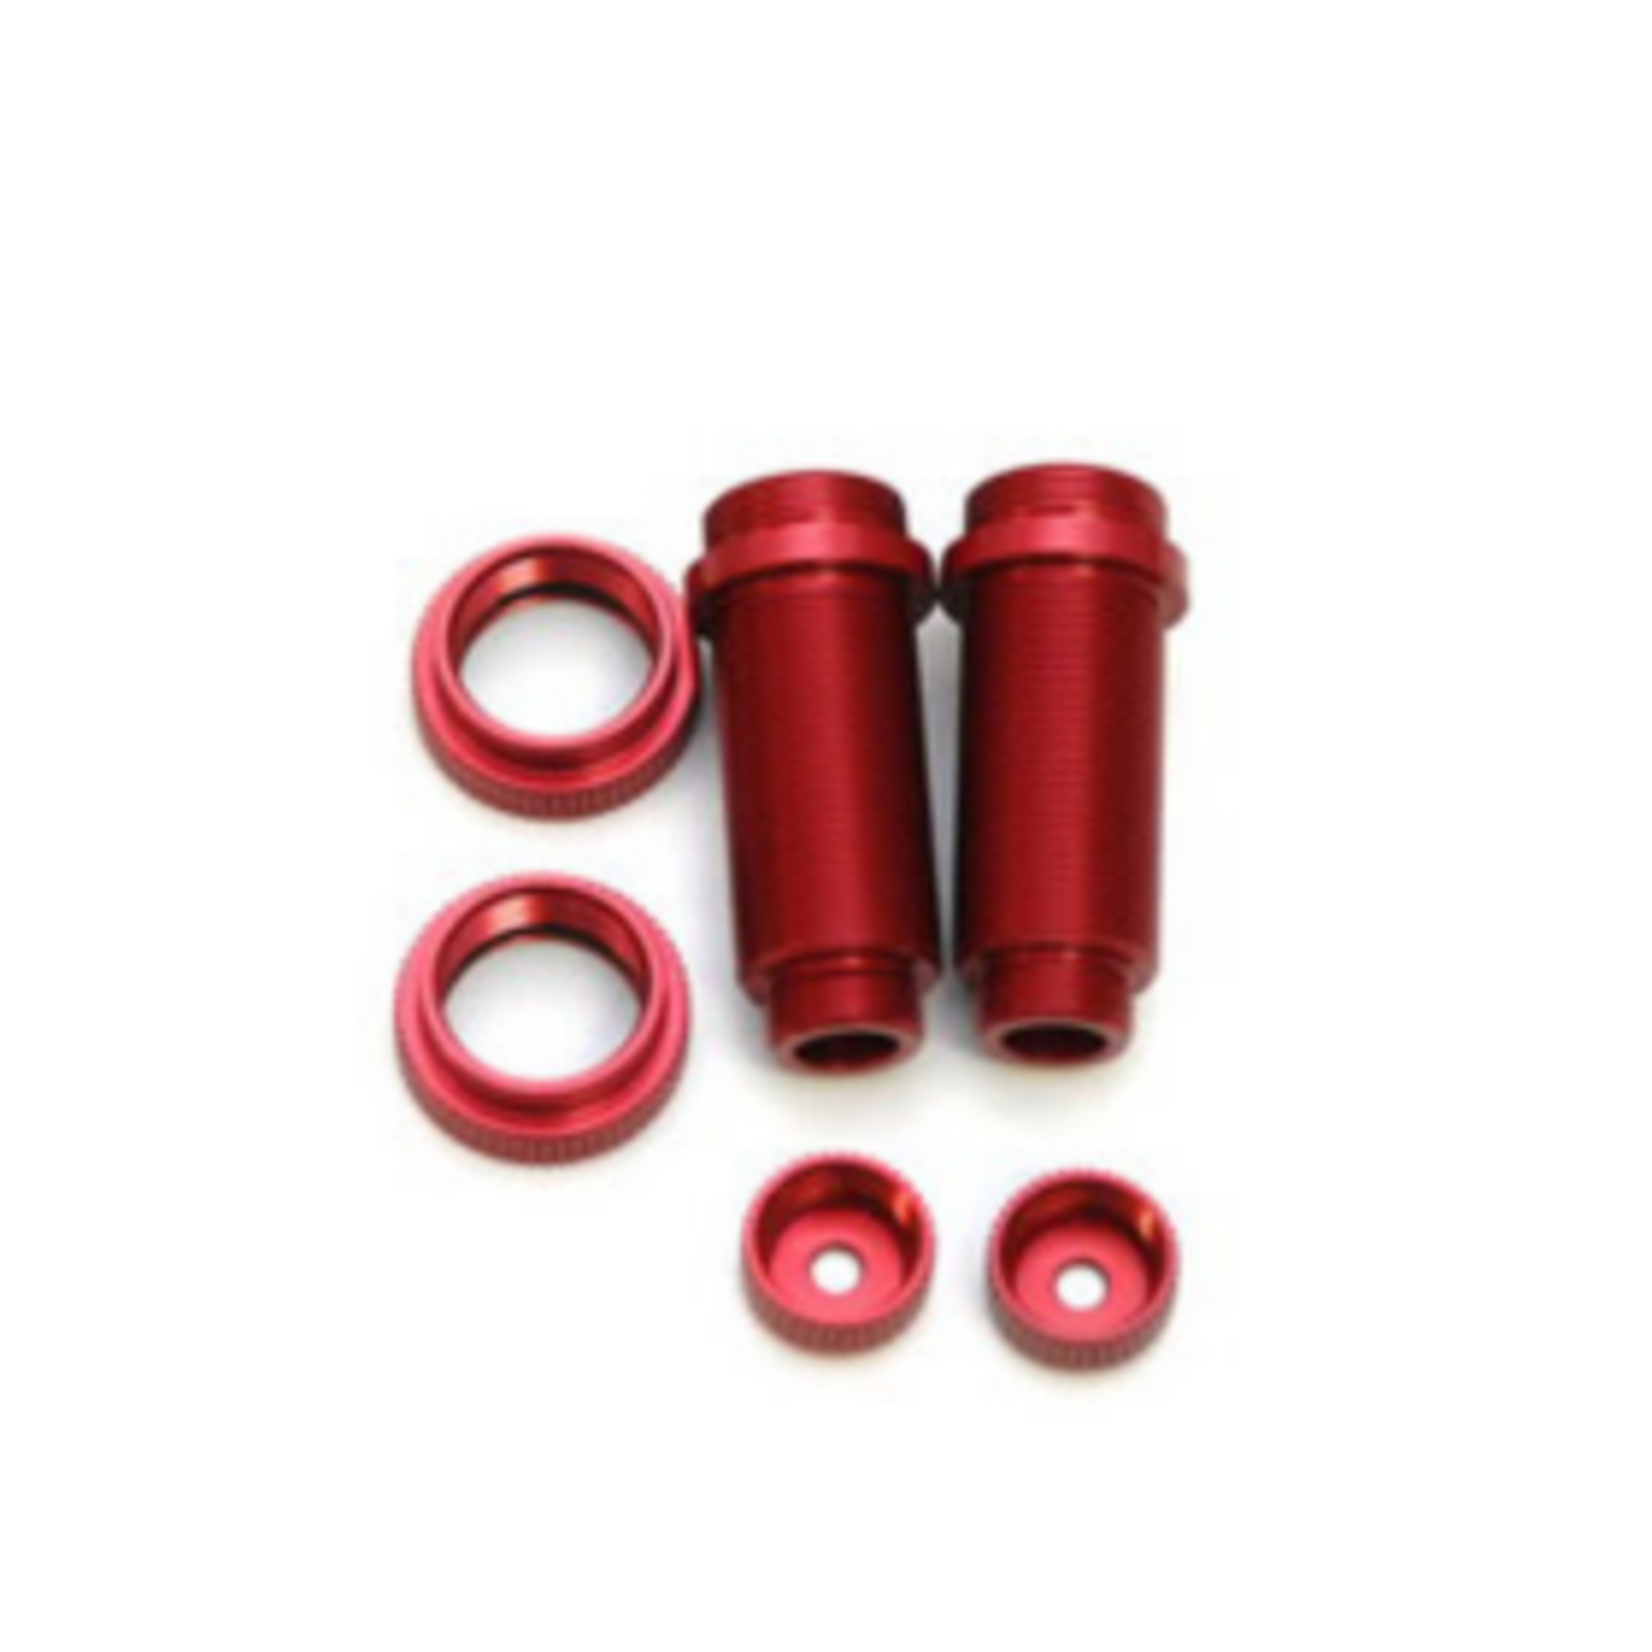 ST Racing Concepts SPTST3765XR ST Racing Concepts Aluminum Threaded Front Shock Body Set (Red) (2) (Slash)